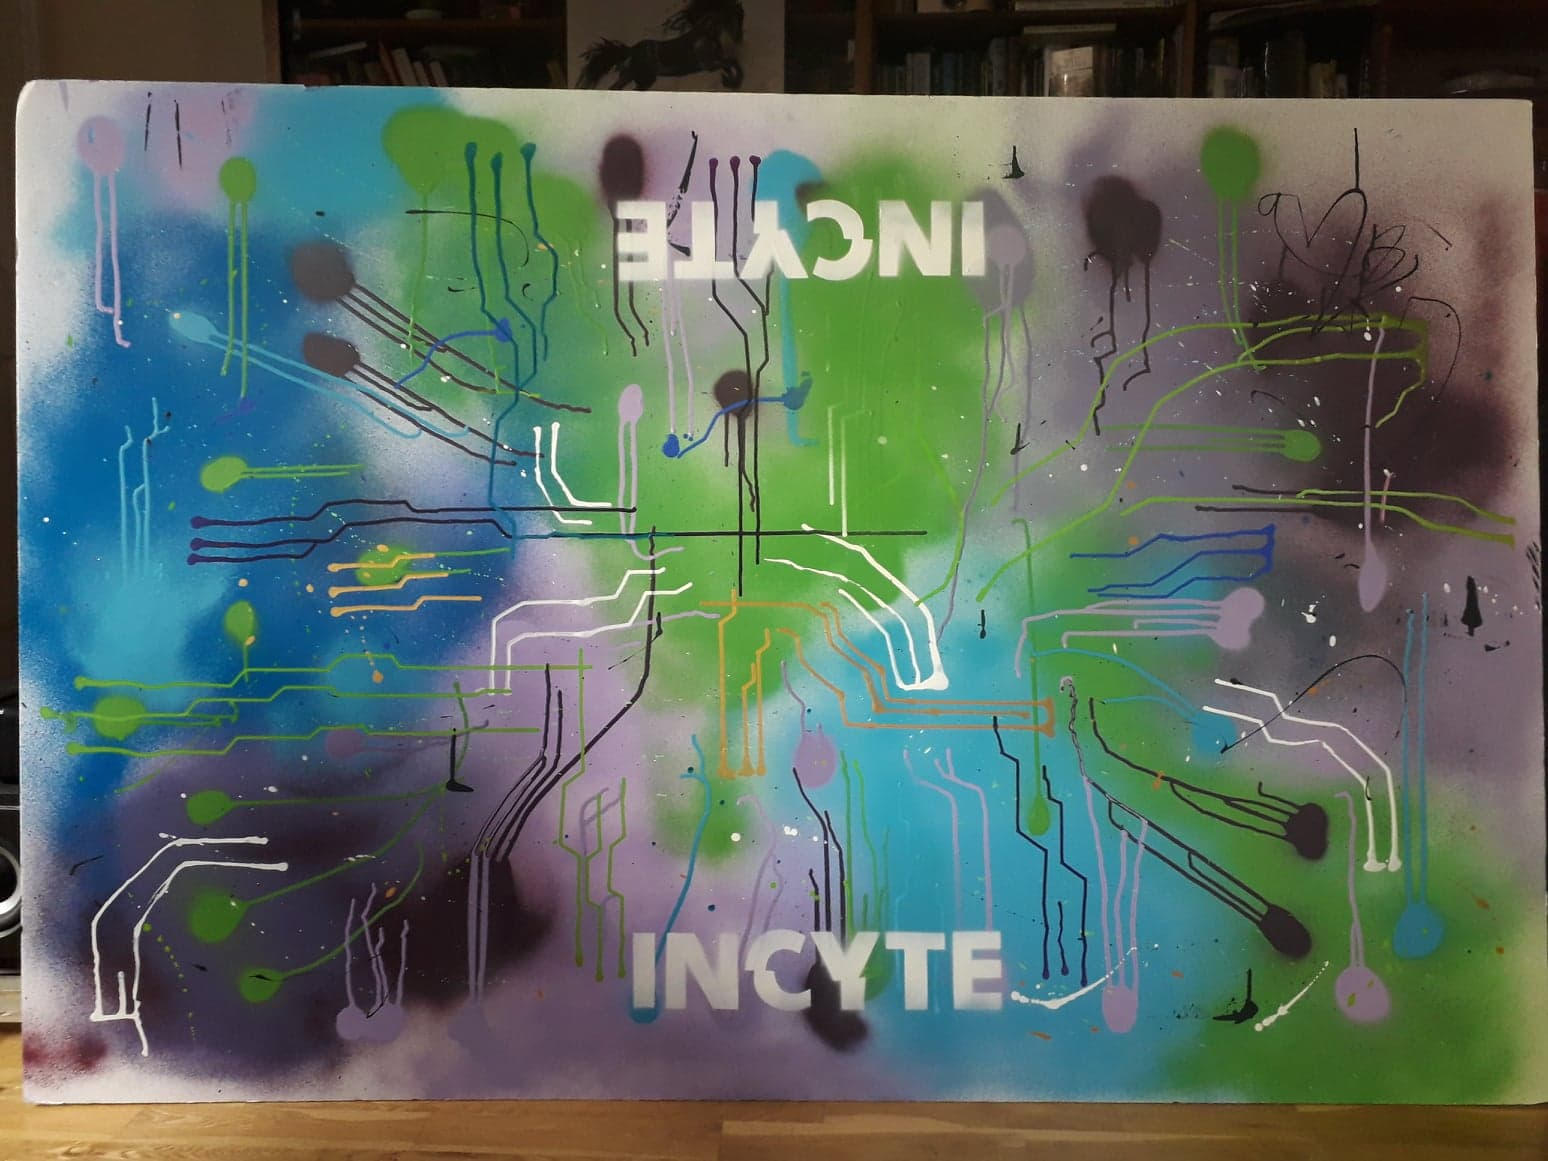 INCYTE event mural